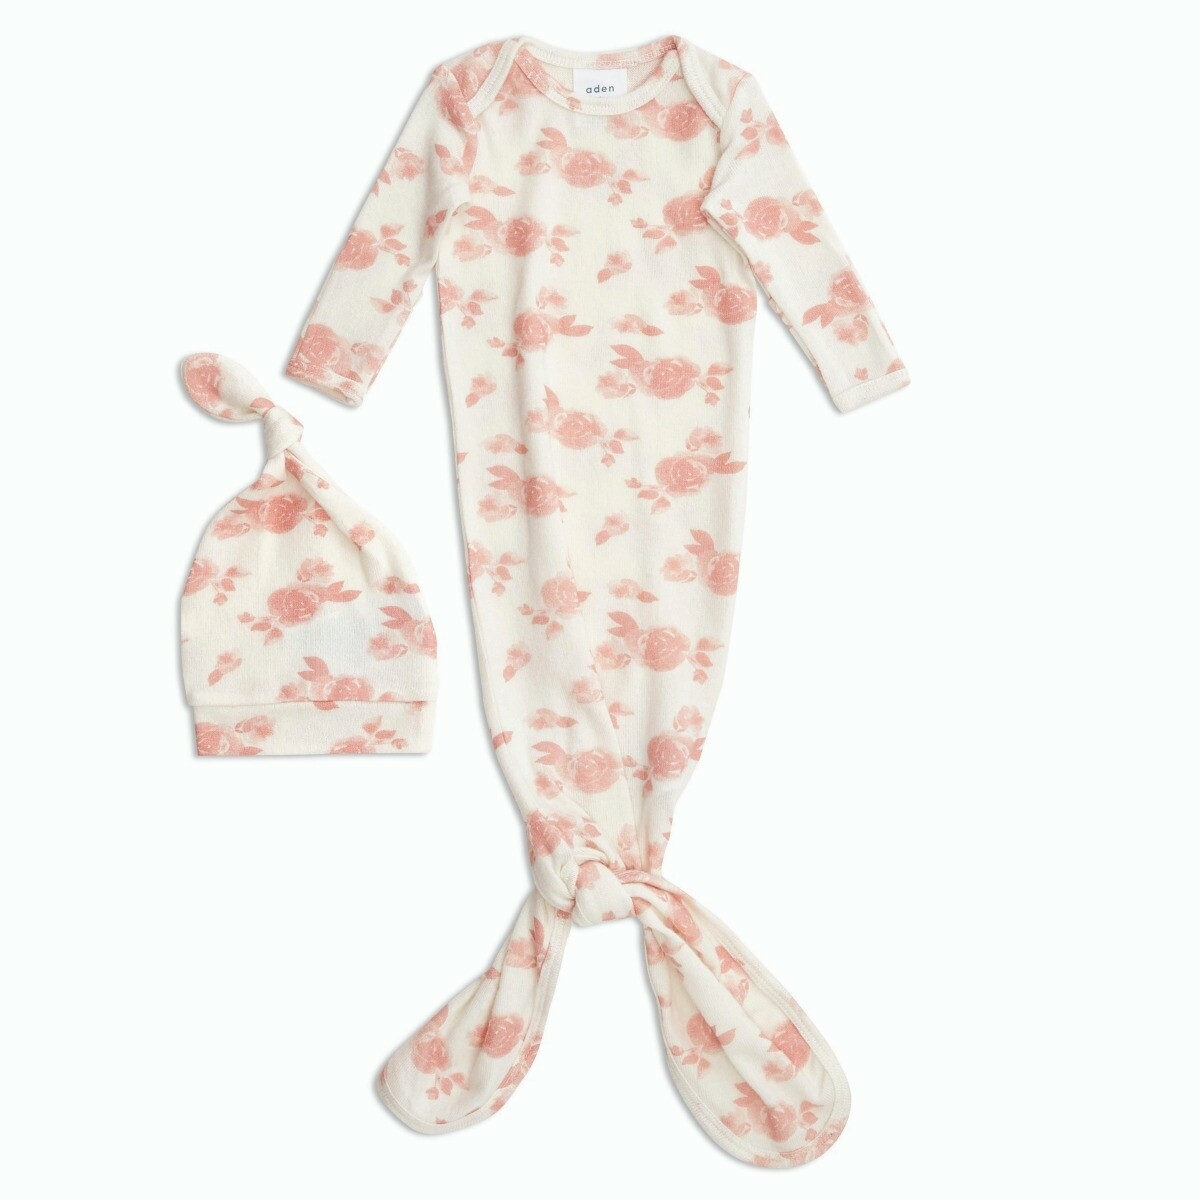 Aden + Anais - Rosettes Snuggle Knit Gown + Hat Set